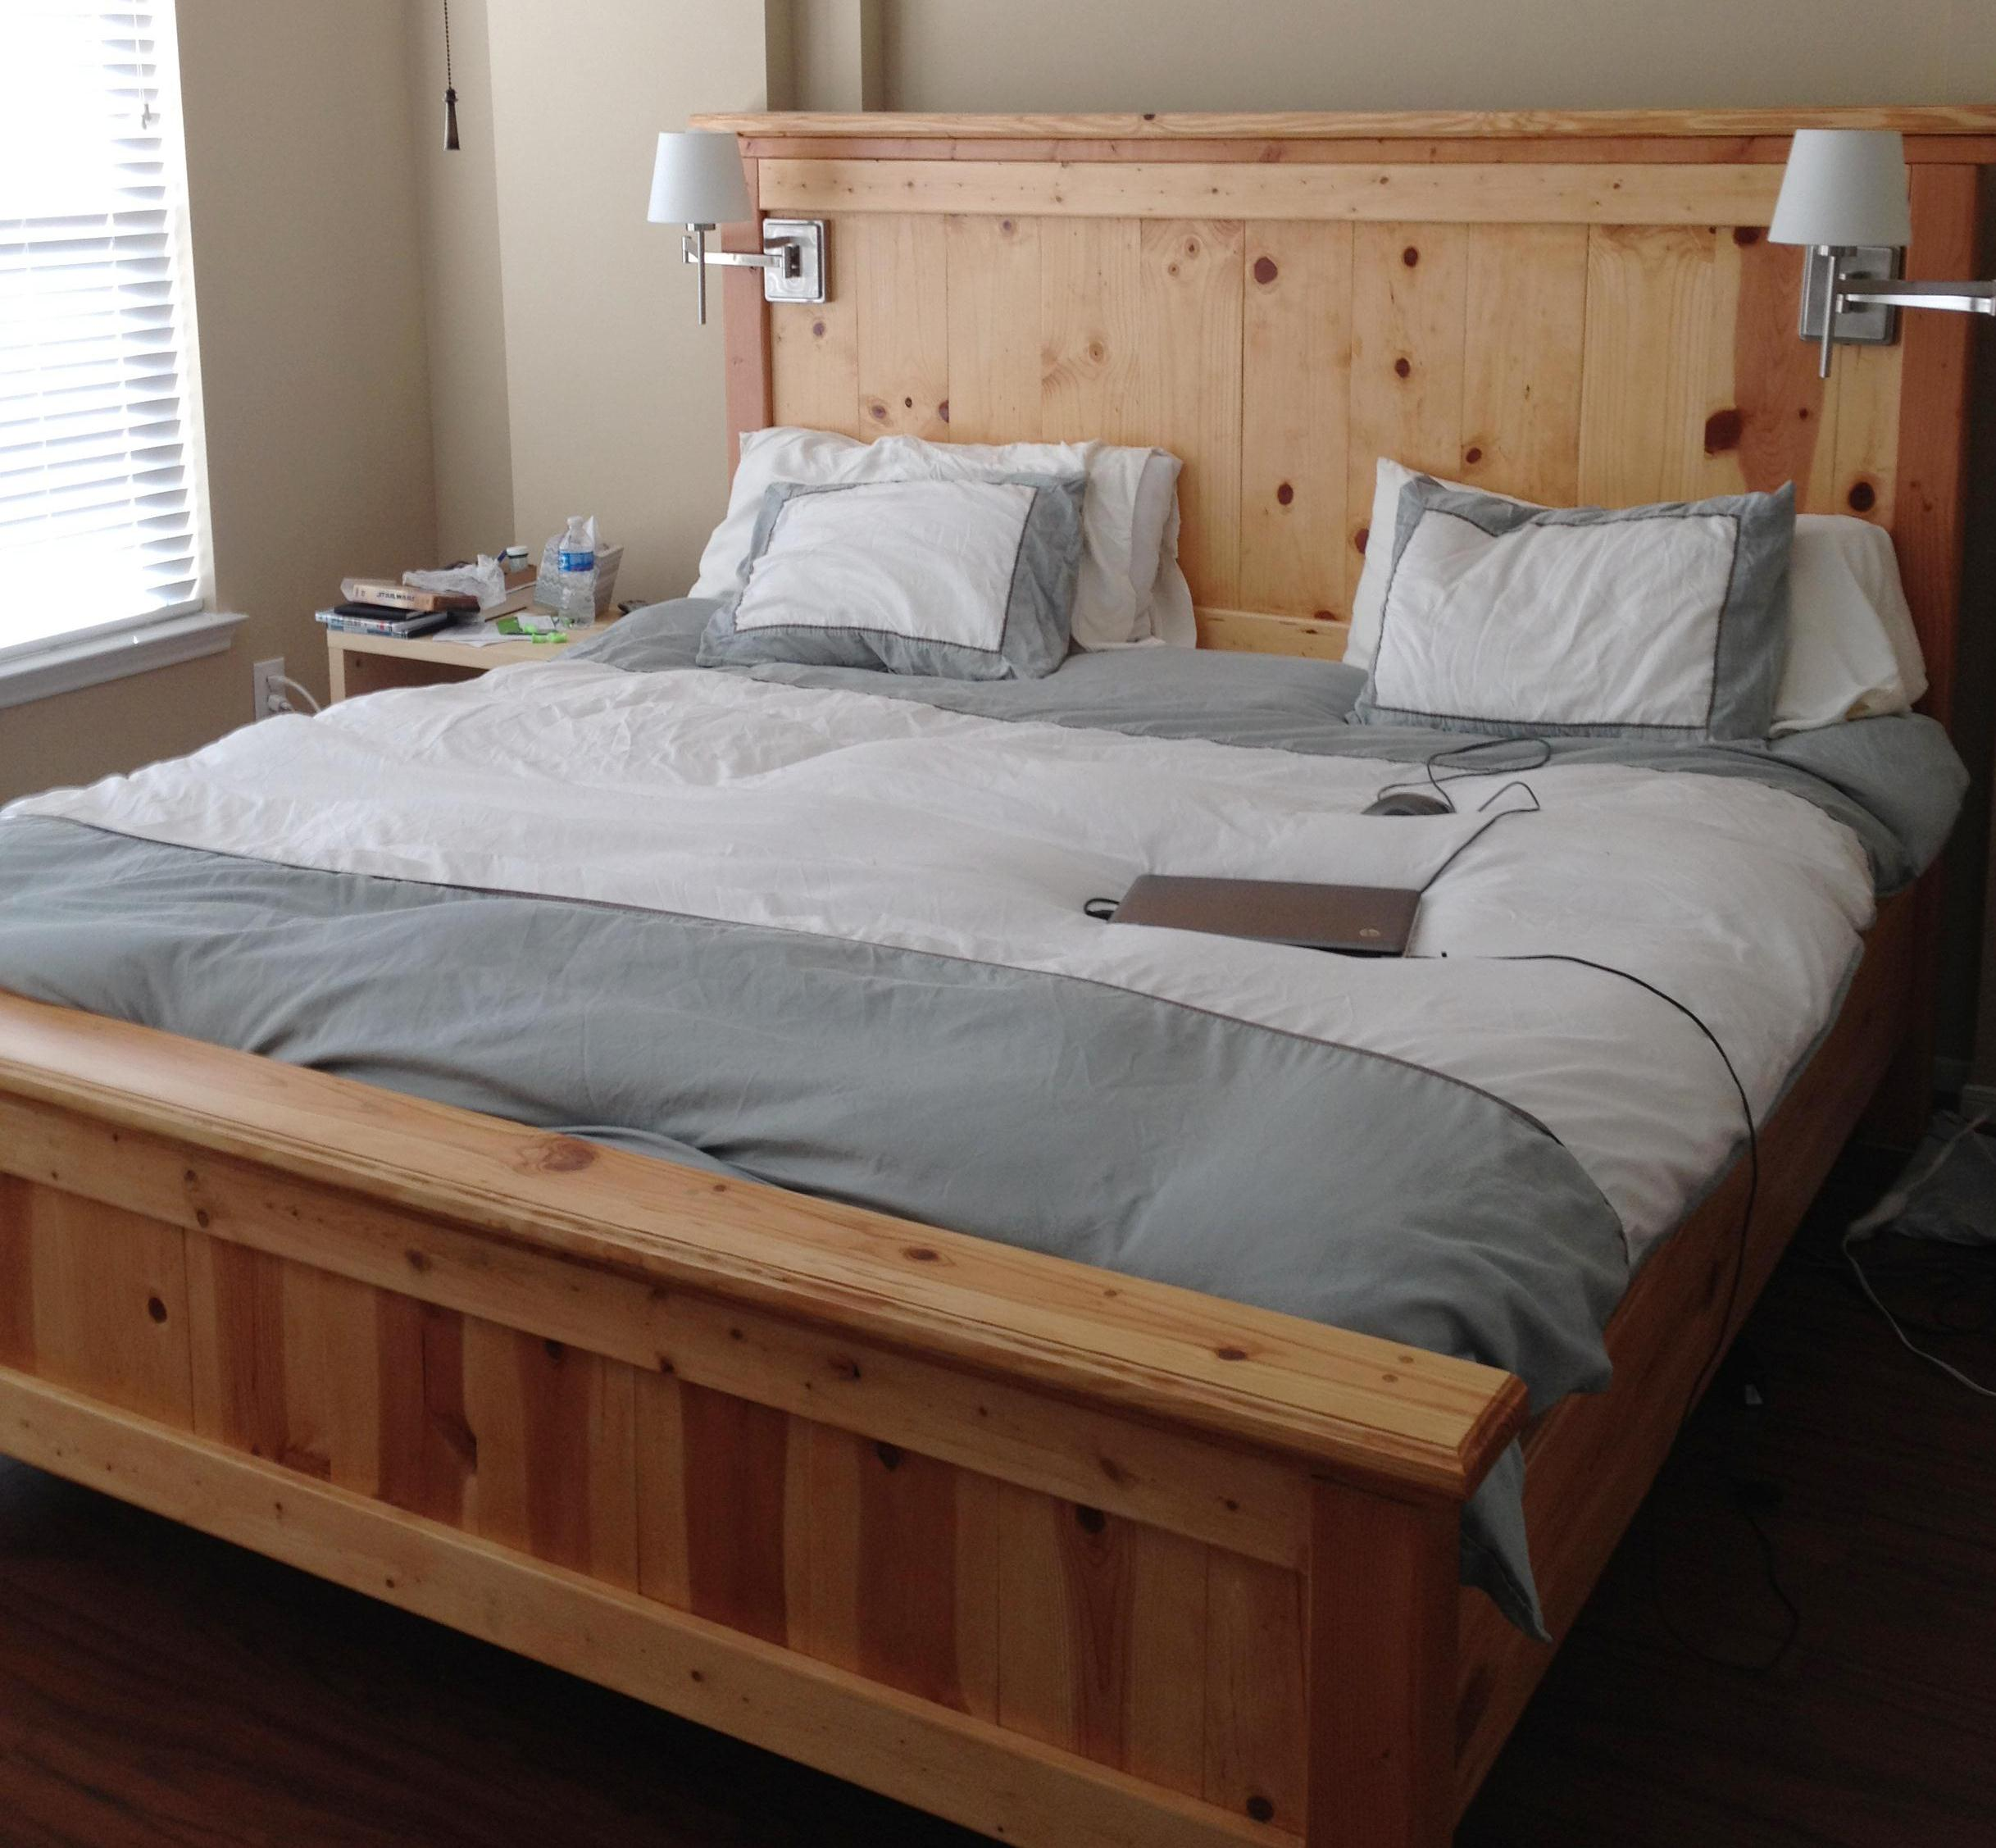 King Size Bed Frame Diy King Size Platform Bed Frame Plans Quick Woodworking